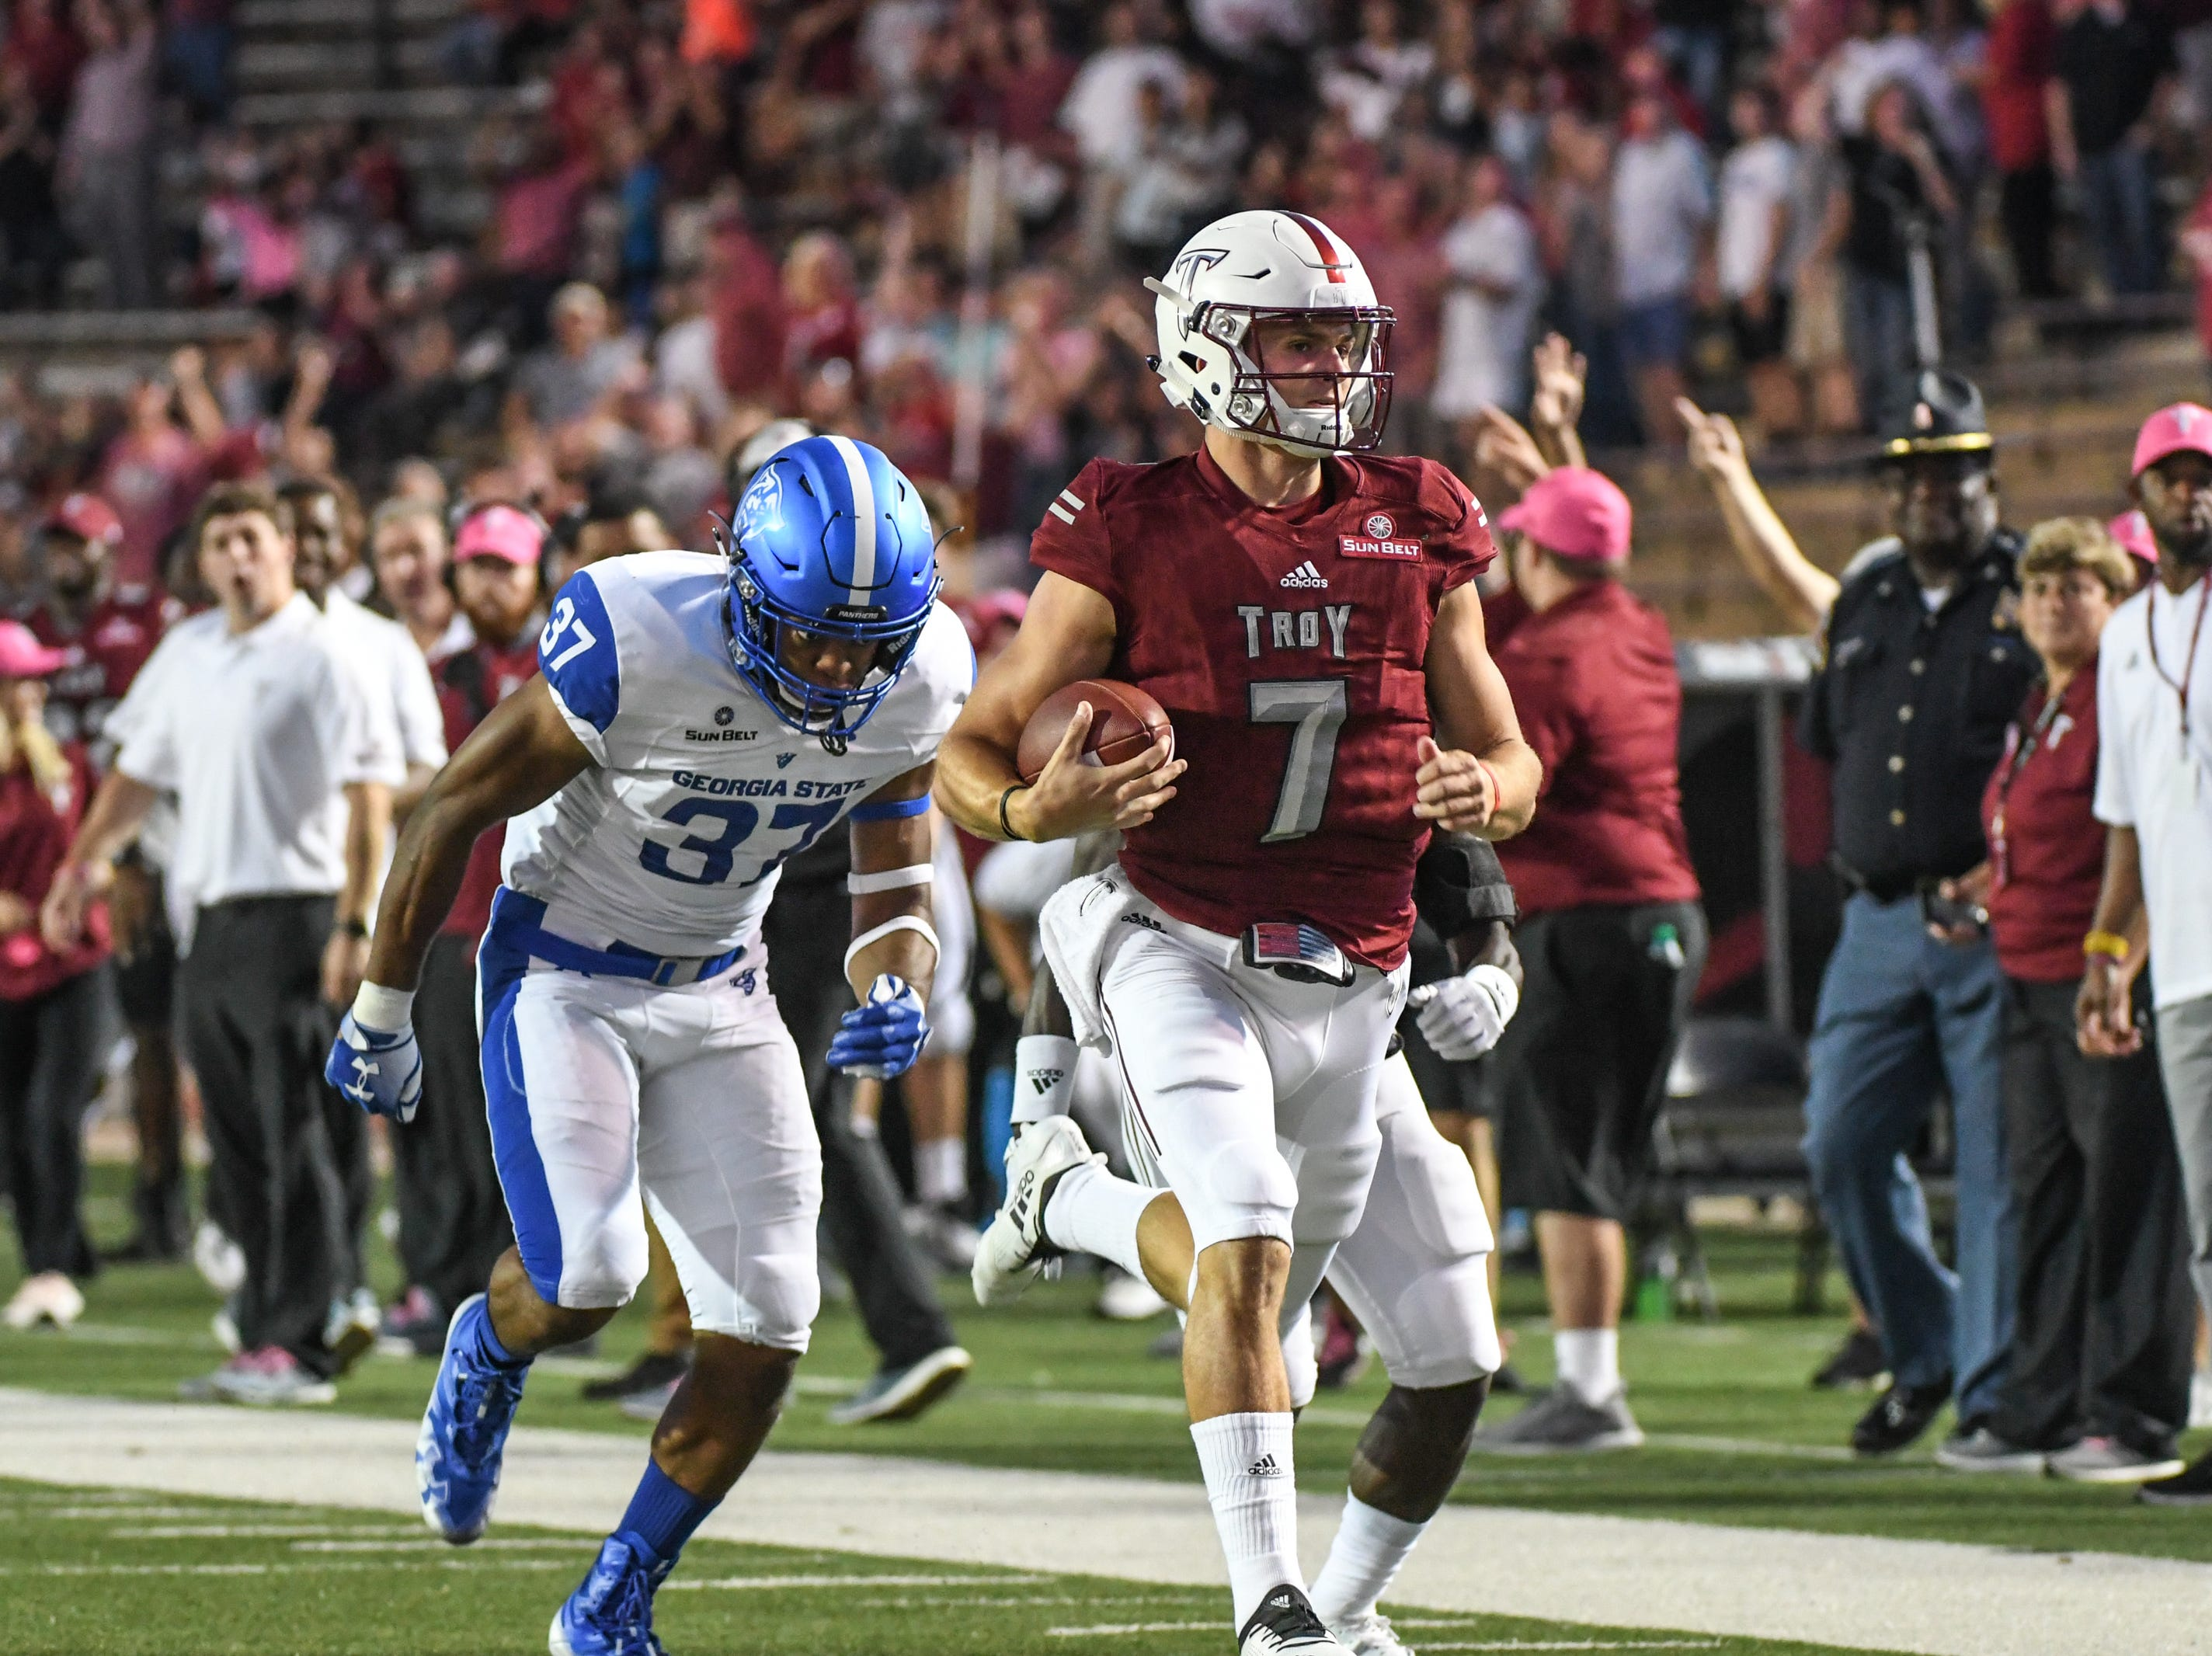 Troy Trojans quarterback Kaleb Barker (7) runs down the field for huge gain during the first half against Georgia State at Veteran's Memorial Stadium in Troy, Ala., on Thursday, Oct. 4, 2018. (Chip Dillard/Special to the Montgomery Advertiser)